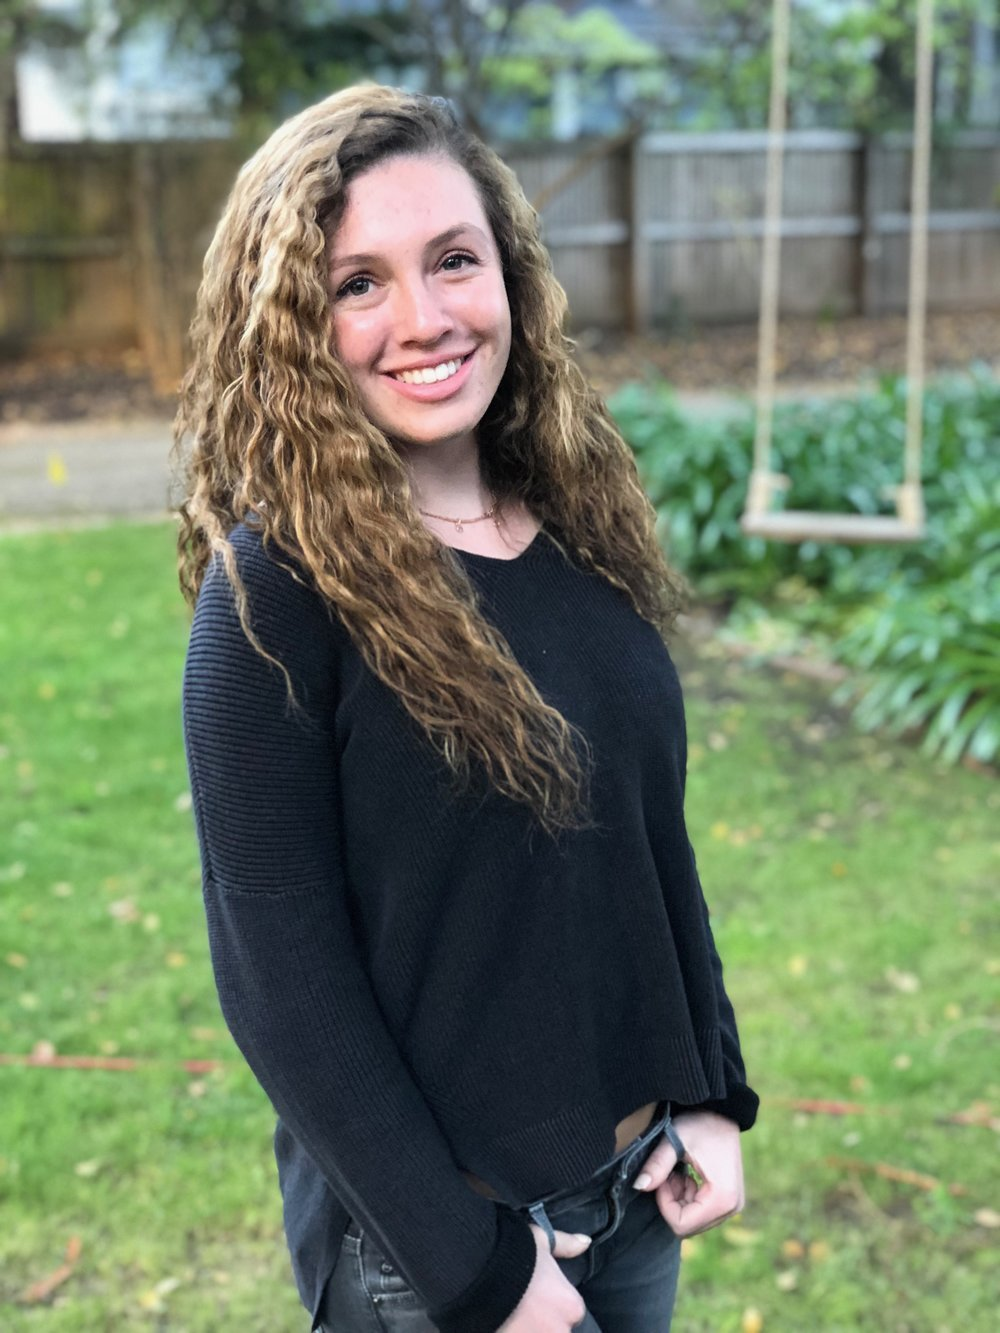 Talia Missan - Talia is a rising junior at Bowdoin College, where she plans to major in Psychology and minor in Government and Legal Studies. She is particularly interested in social and clinical psychology and hopes to pursue a career in one of these fields.